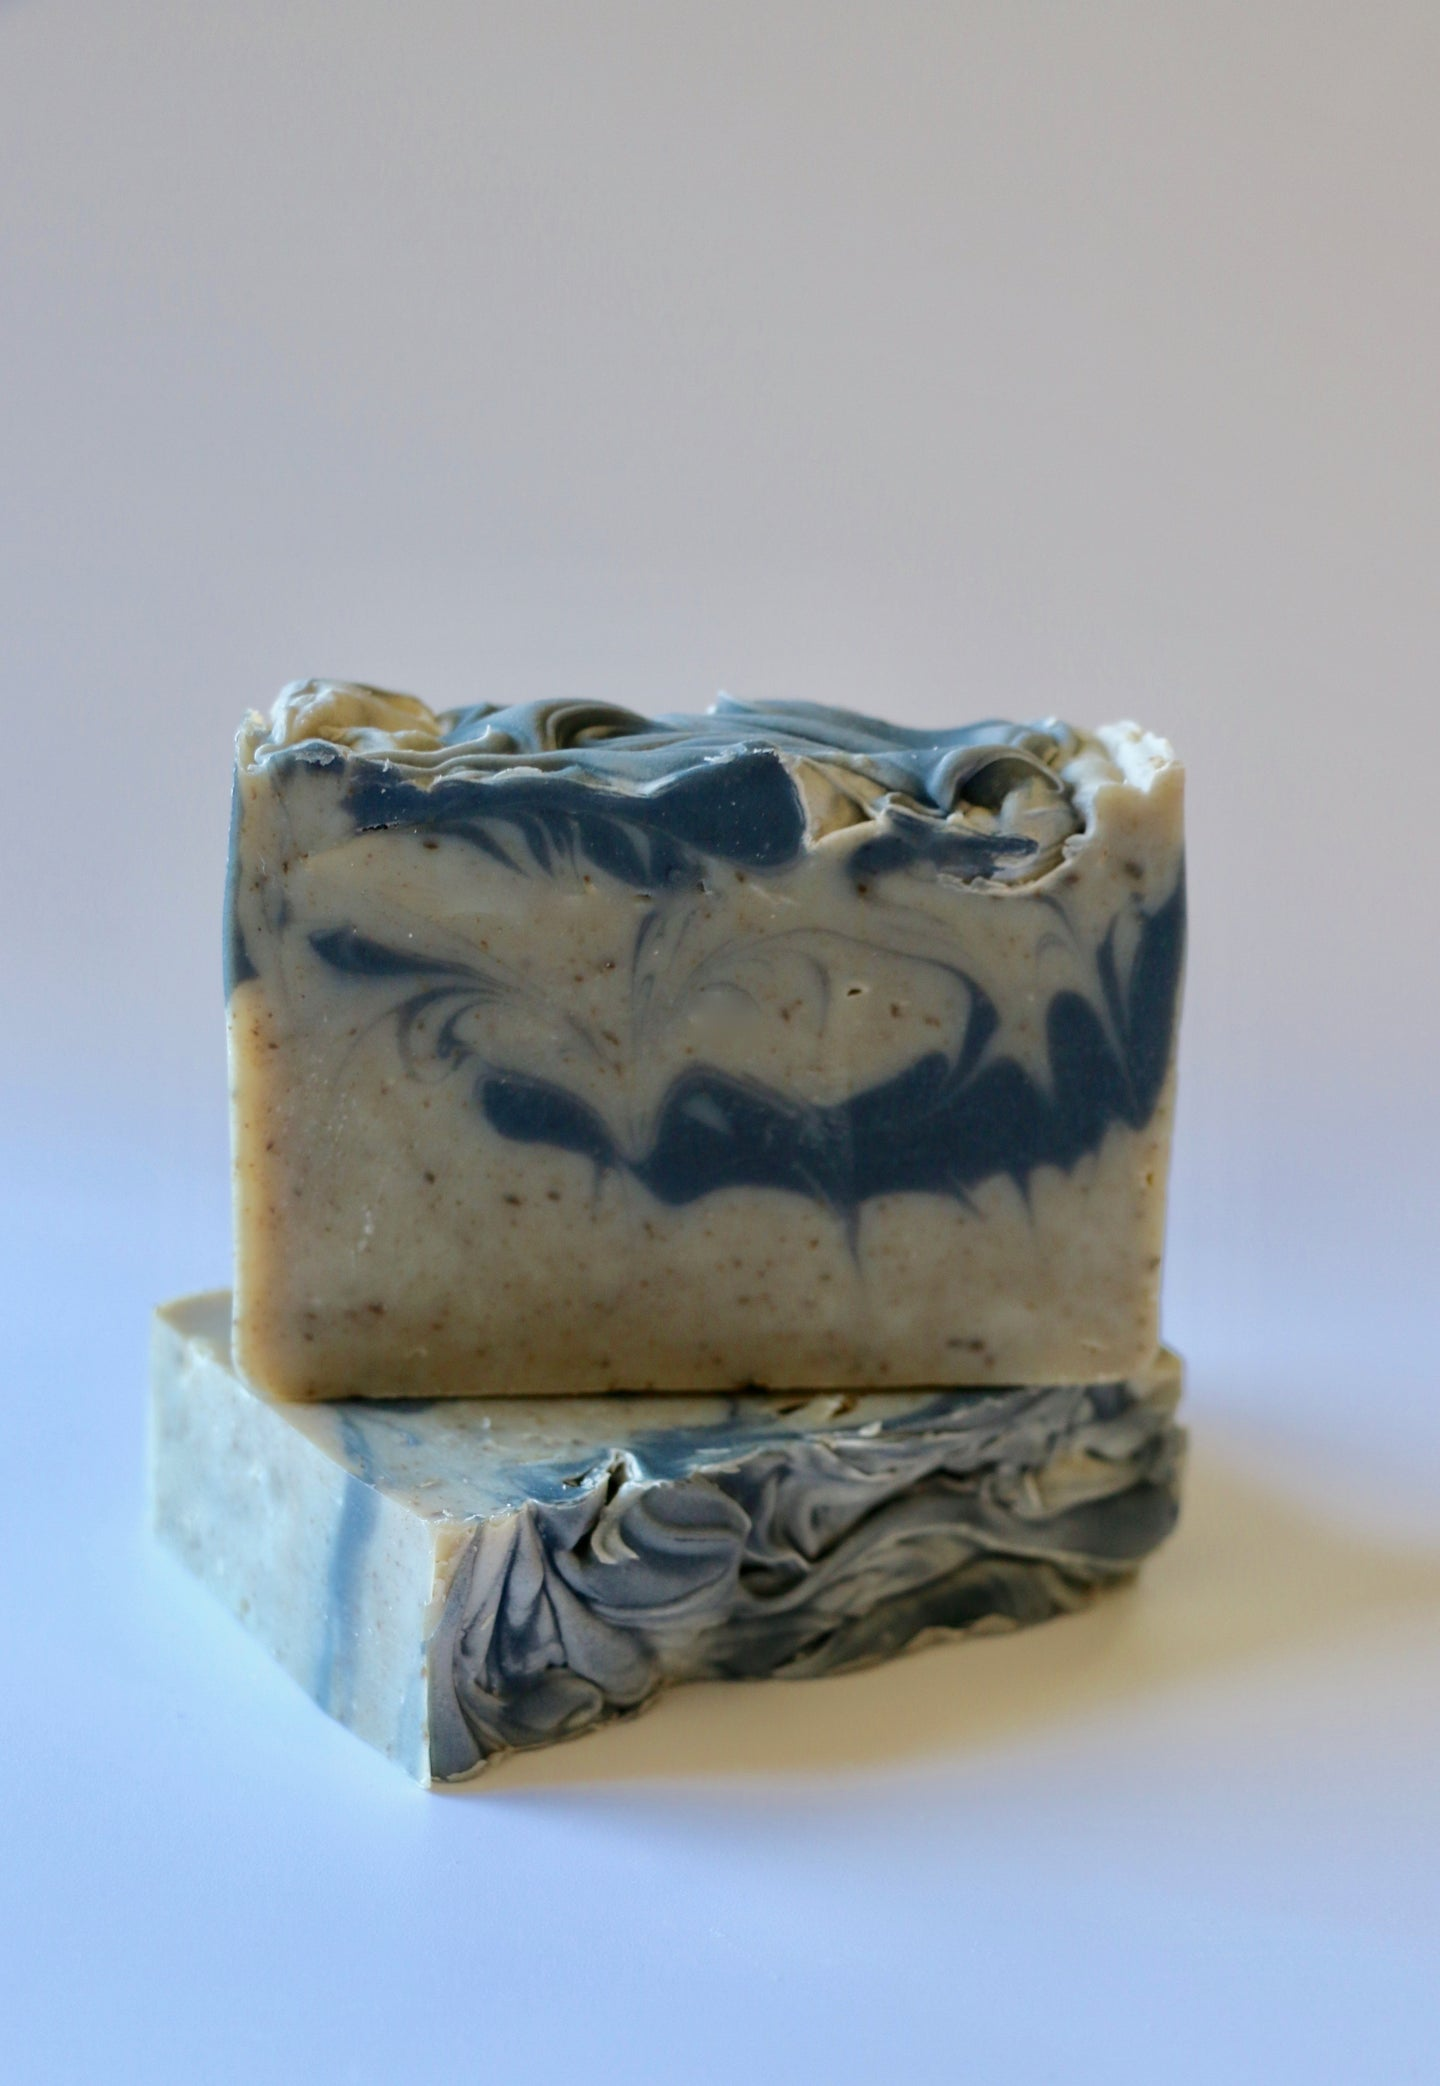 Dead Sea mud + activated charcoal. Detox natural handcrafted soap. Ishtahfeetah soapery.